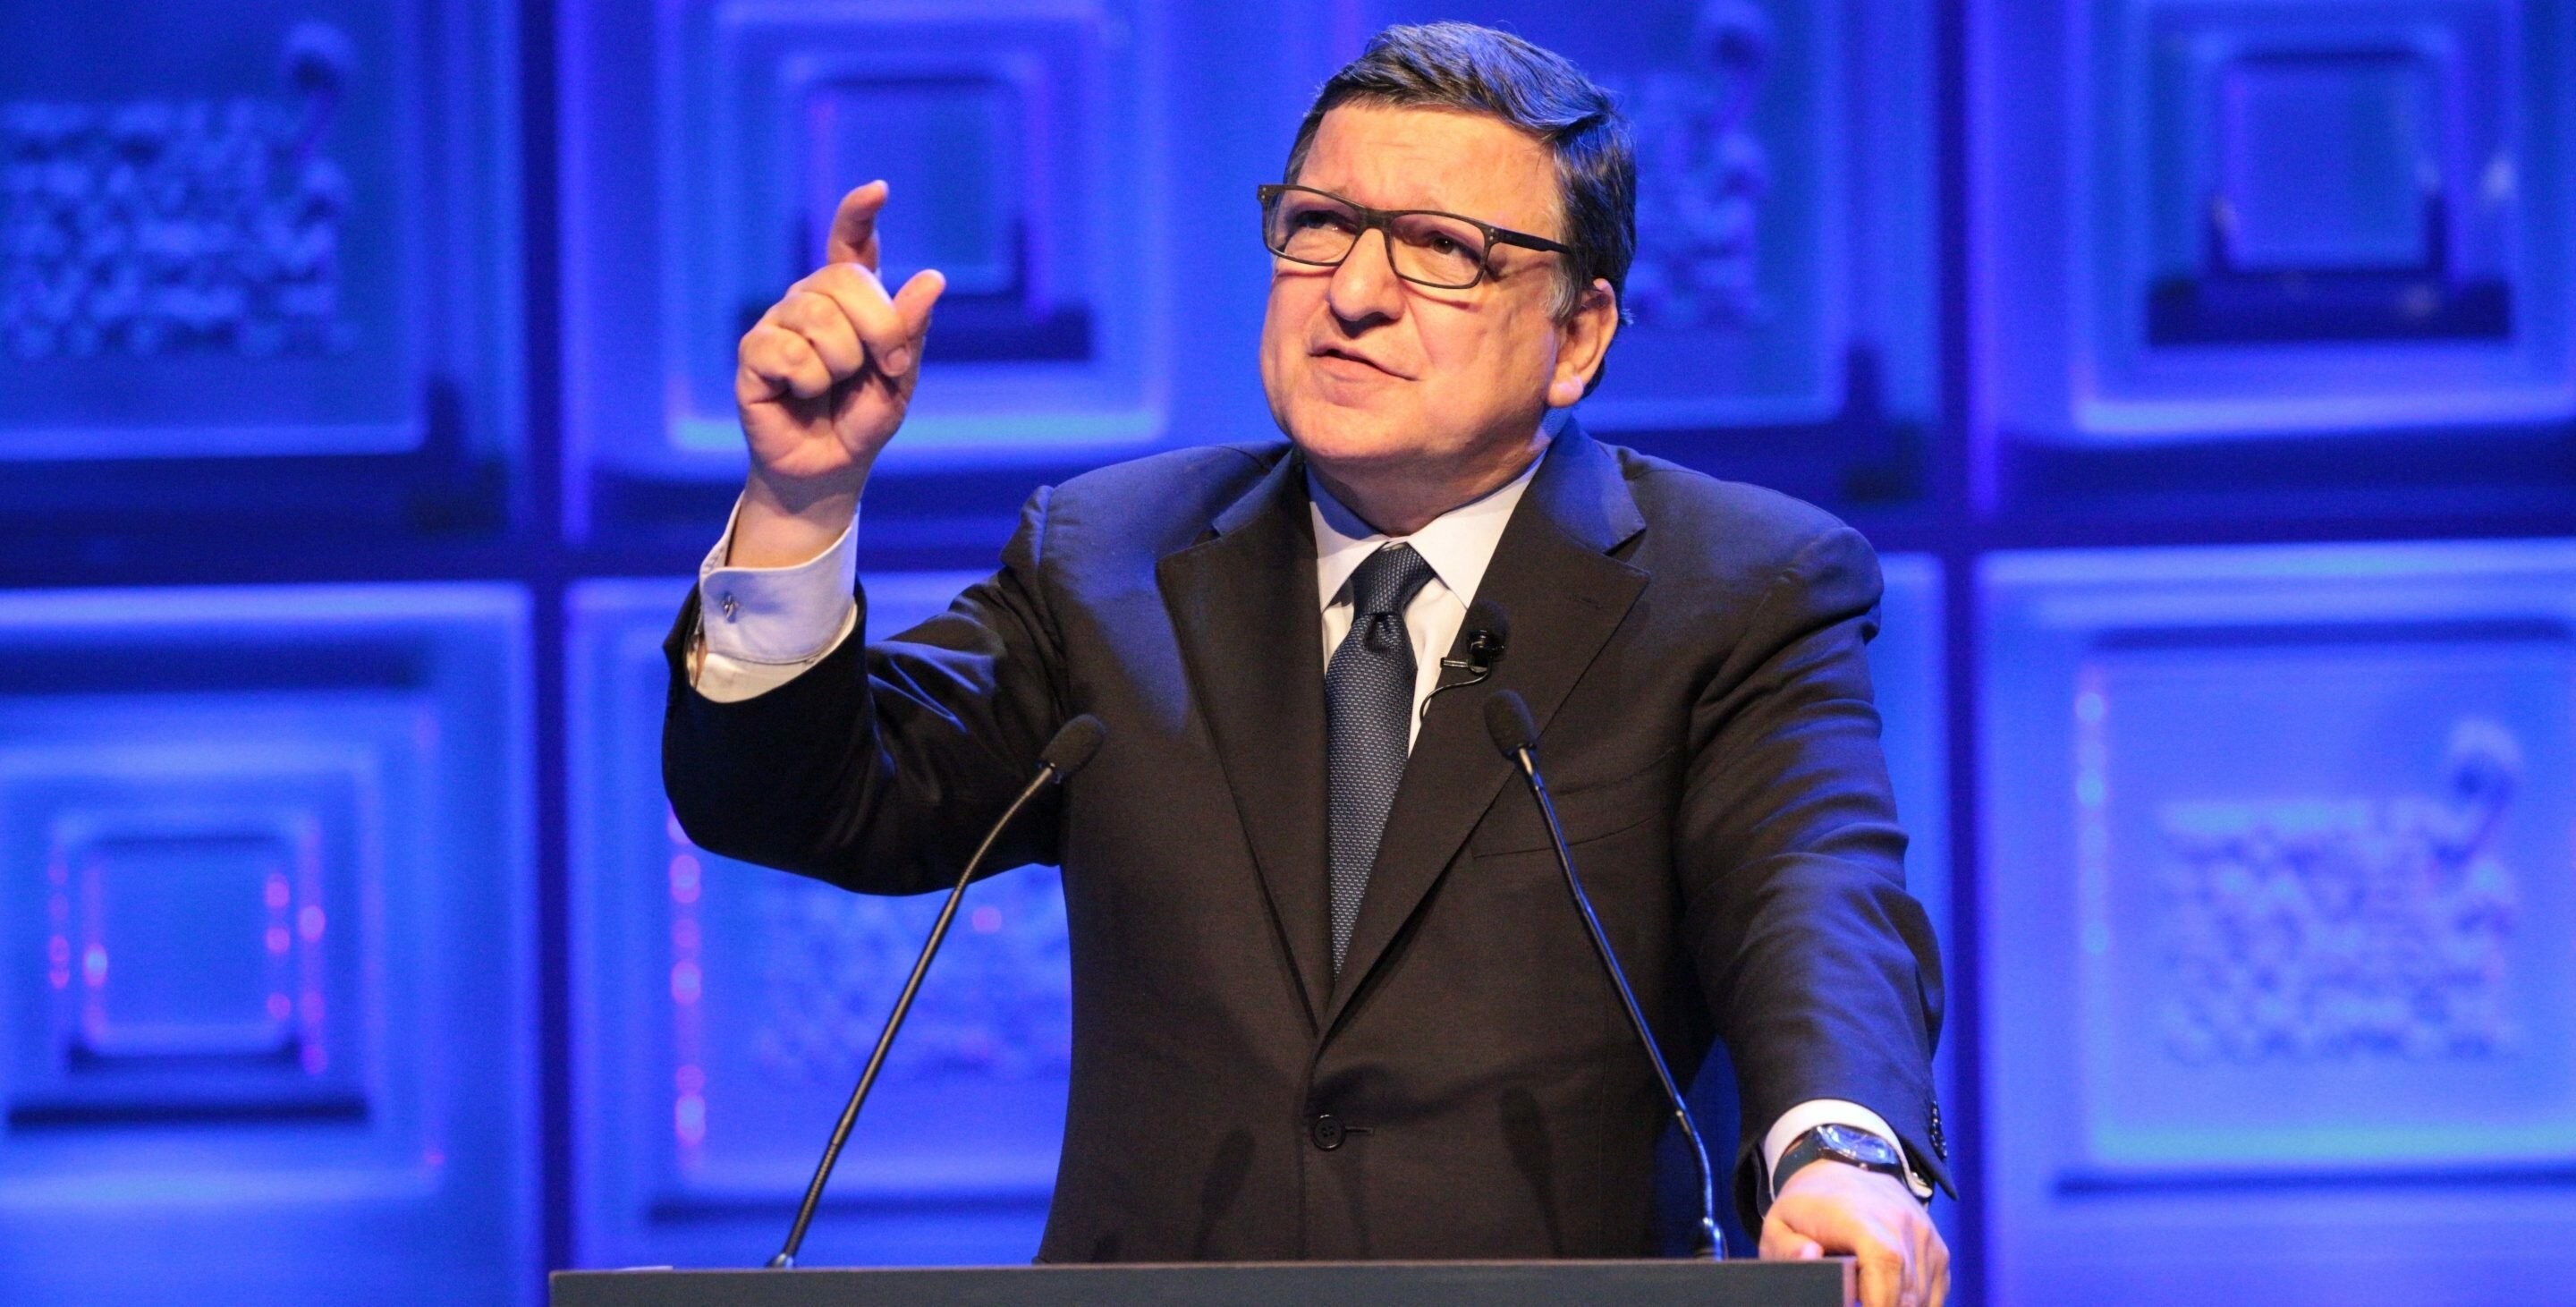 Sign of the Times: José Manuel Barroso